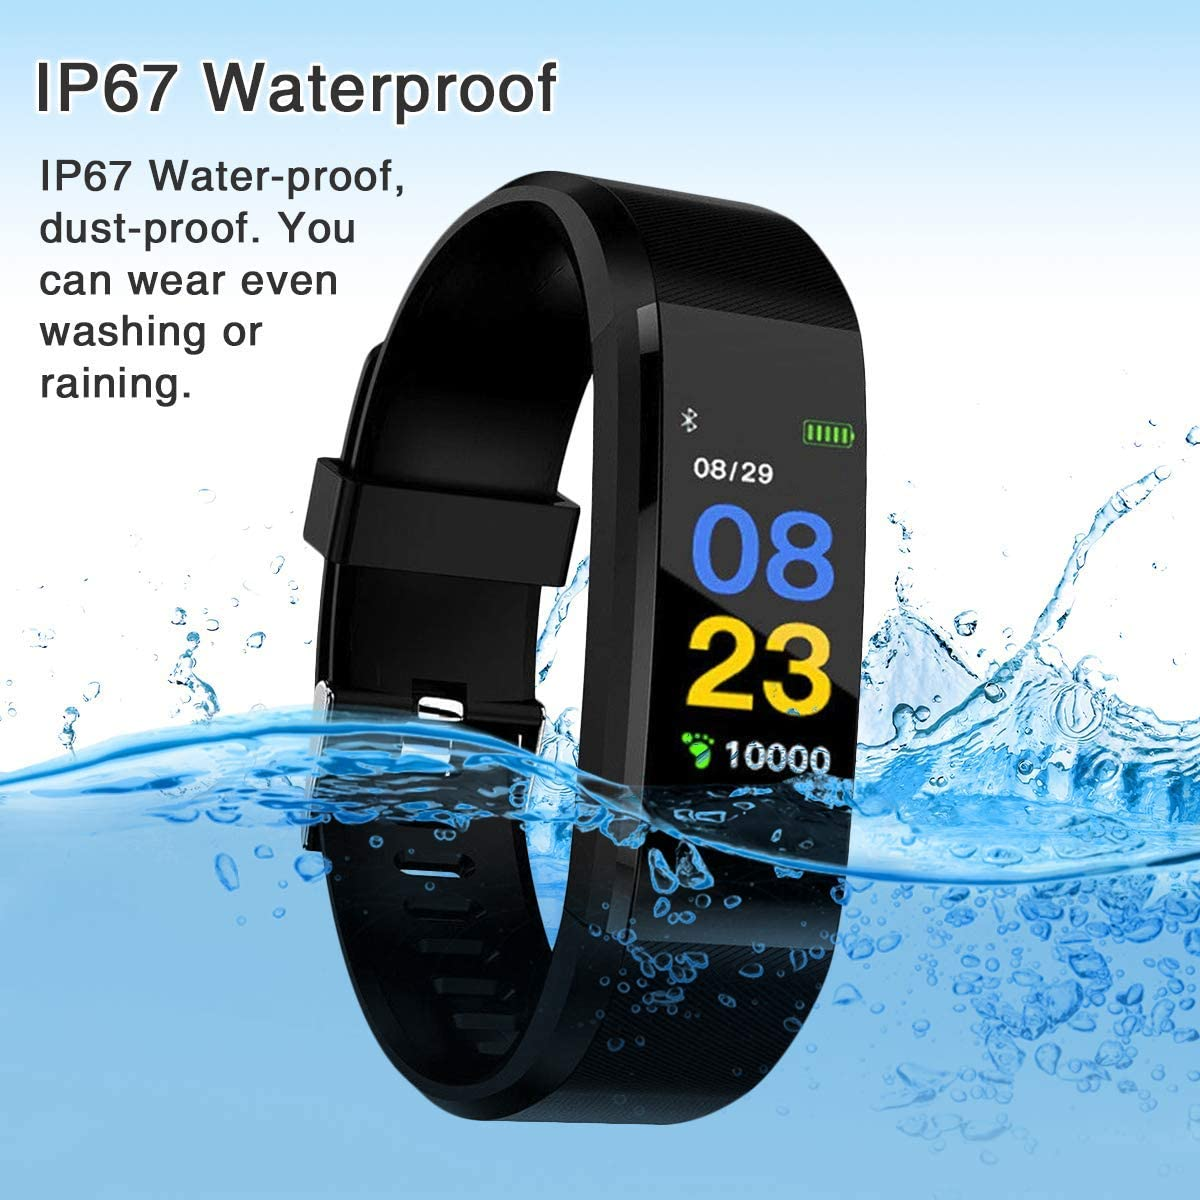 Activity Trackers Health Exercise Watch Heart Rate Smart Watch Blood Pressure Monitor, Waterproof Fitness Tracker Band with Step Counter, Calorie Counter, Pedometer Watch for Kids Women Men (Black)